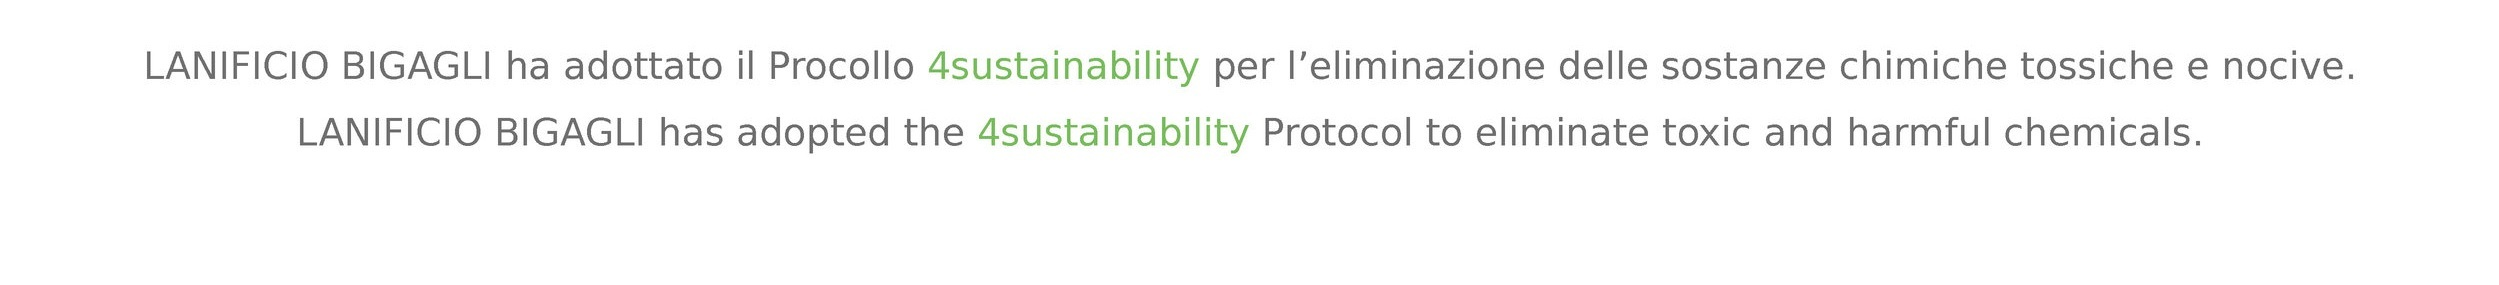 4sustainability_web.jpg